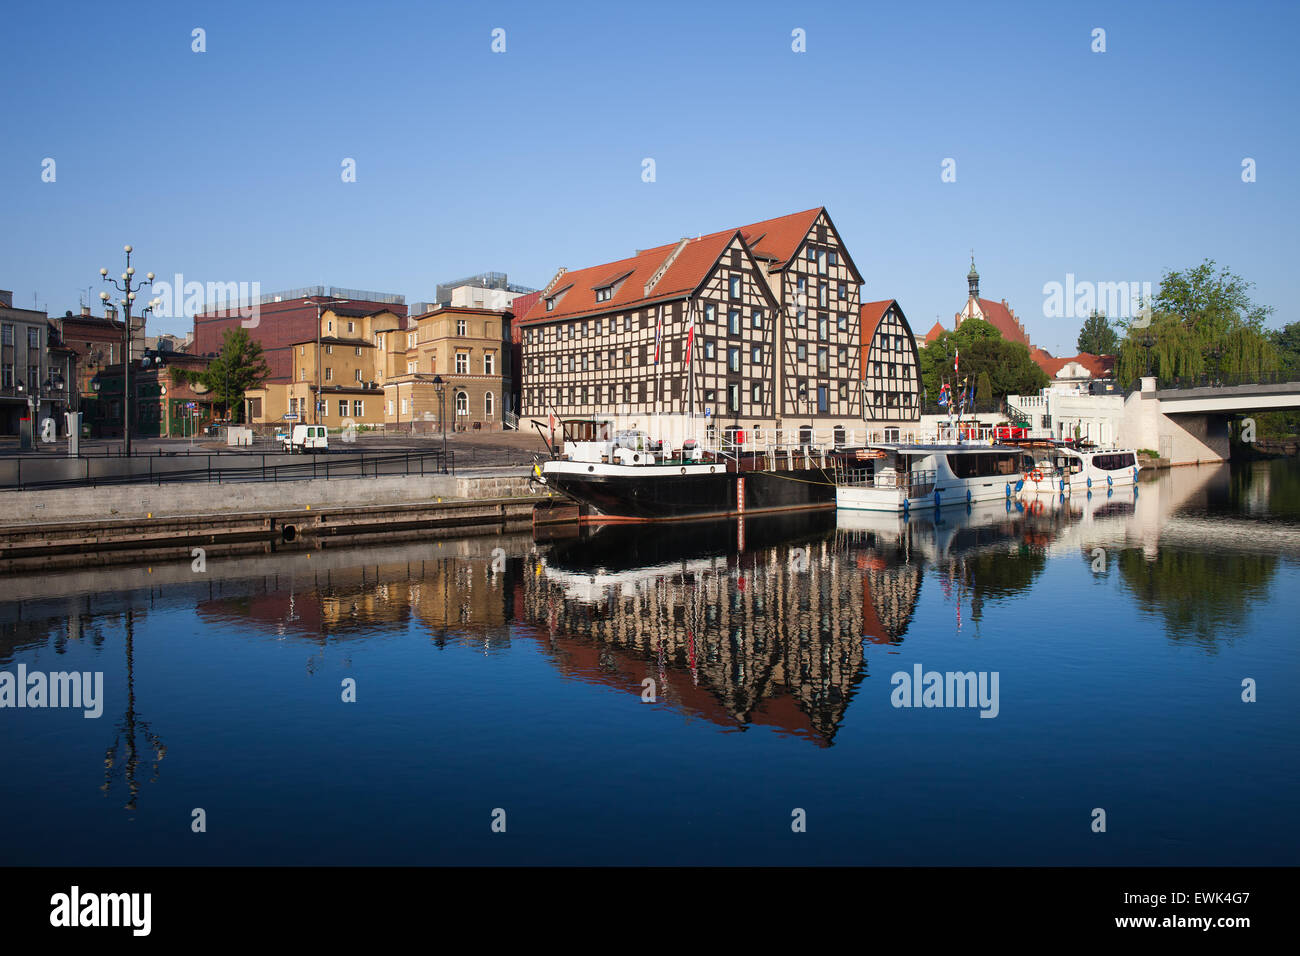 City of Bydgoszcz in Poland and Granaries by the Brda river. Stock Photo